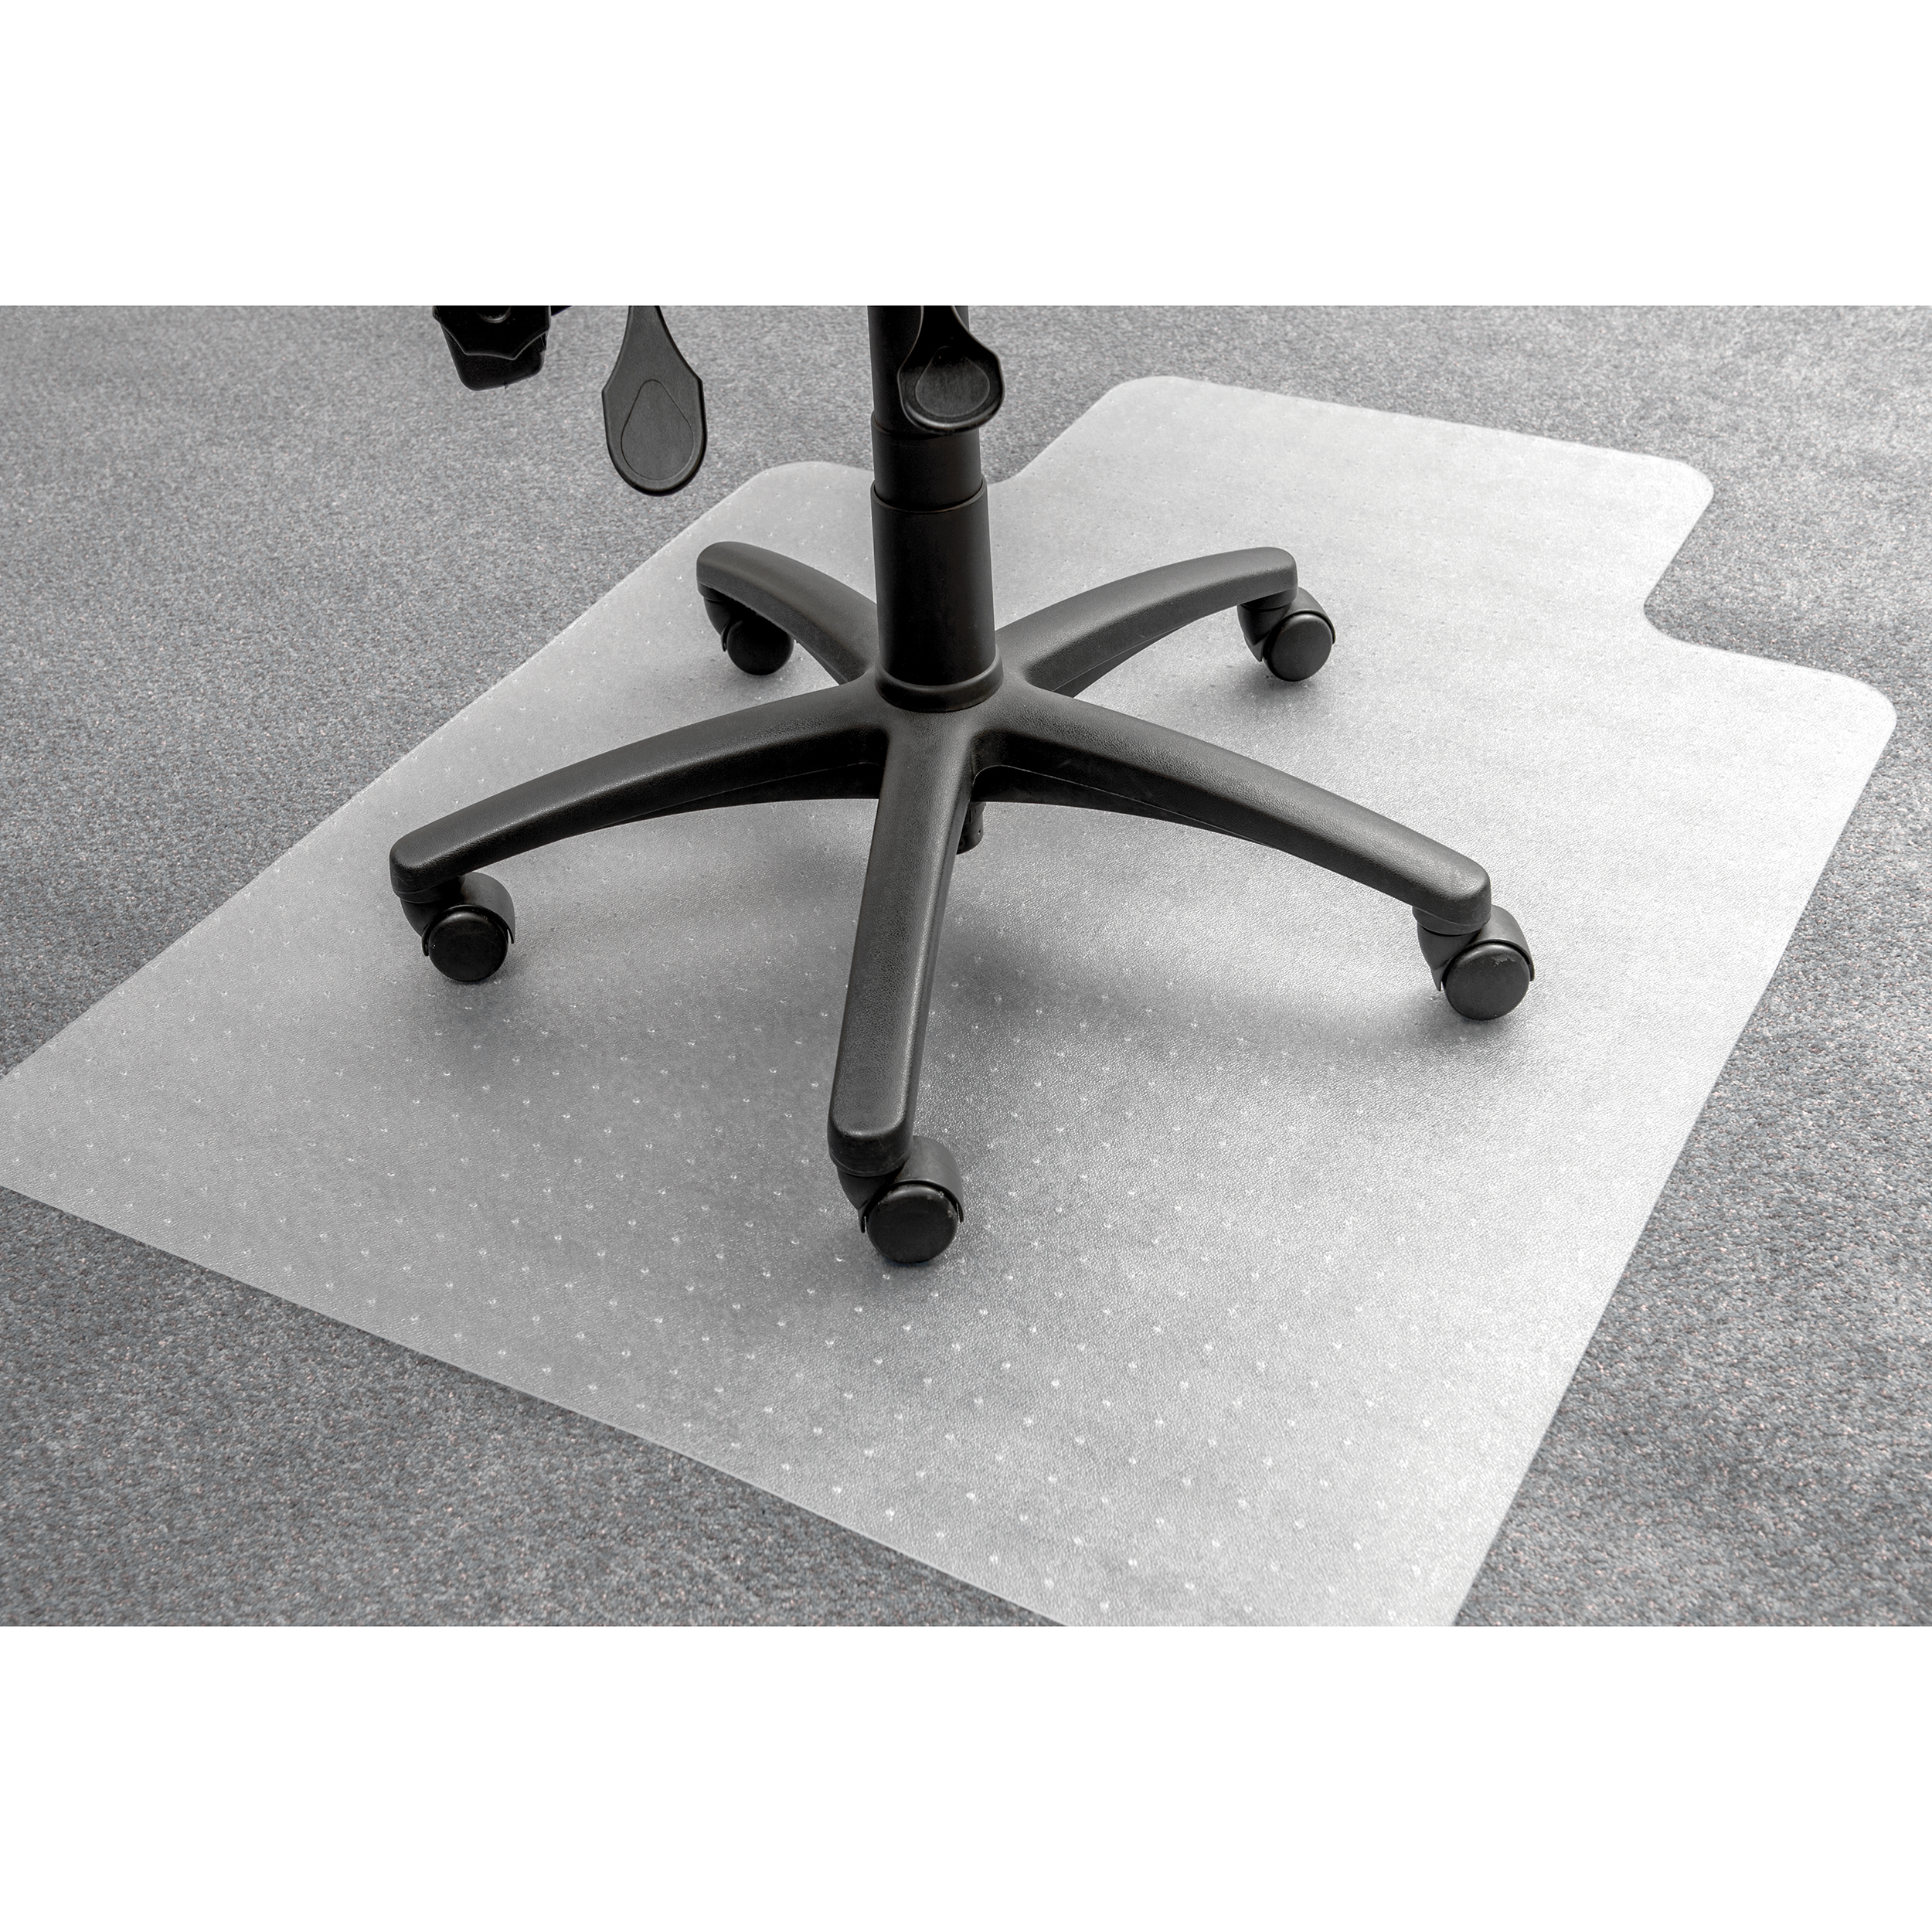 For Hard Floors 5 Star Office Chair Mat For Carpets PVC Lipped 900x1200mm Clear/Transparent